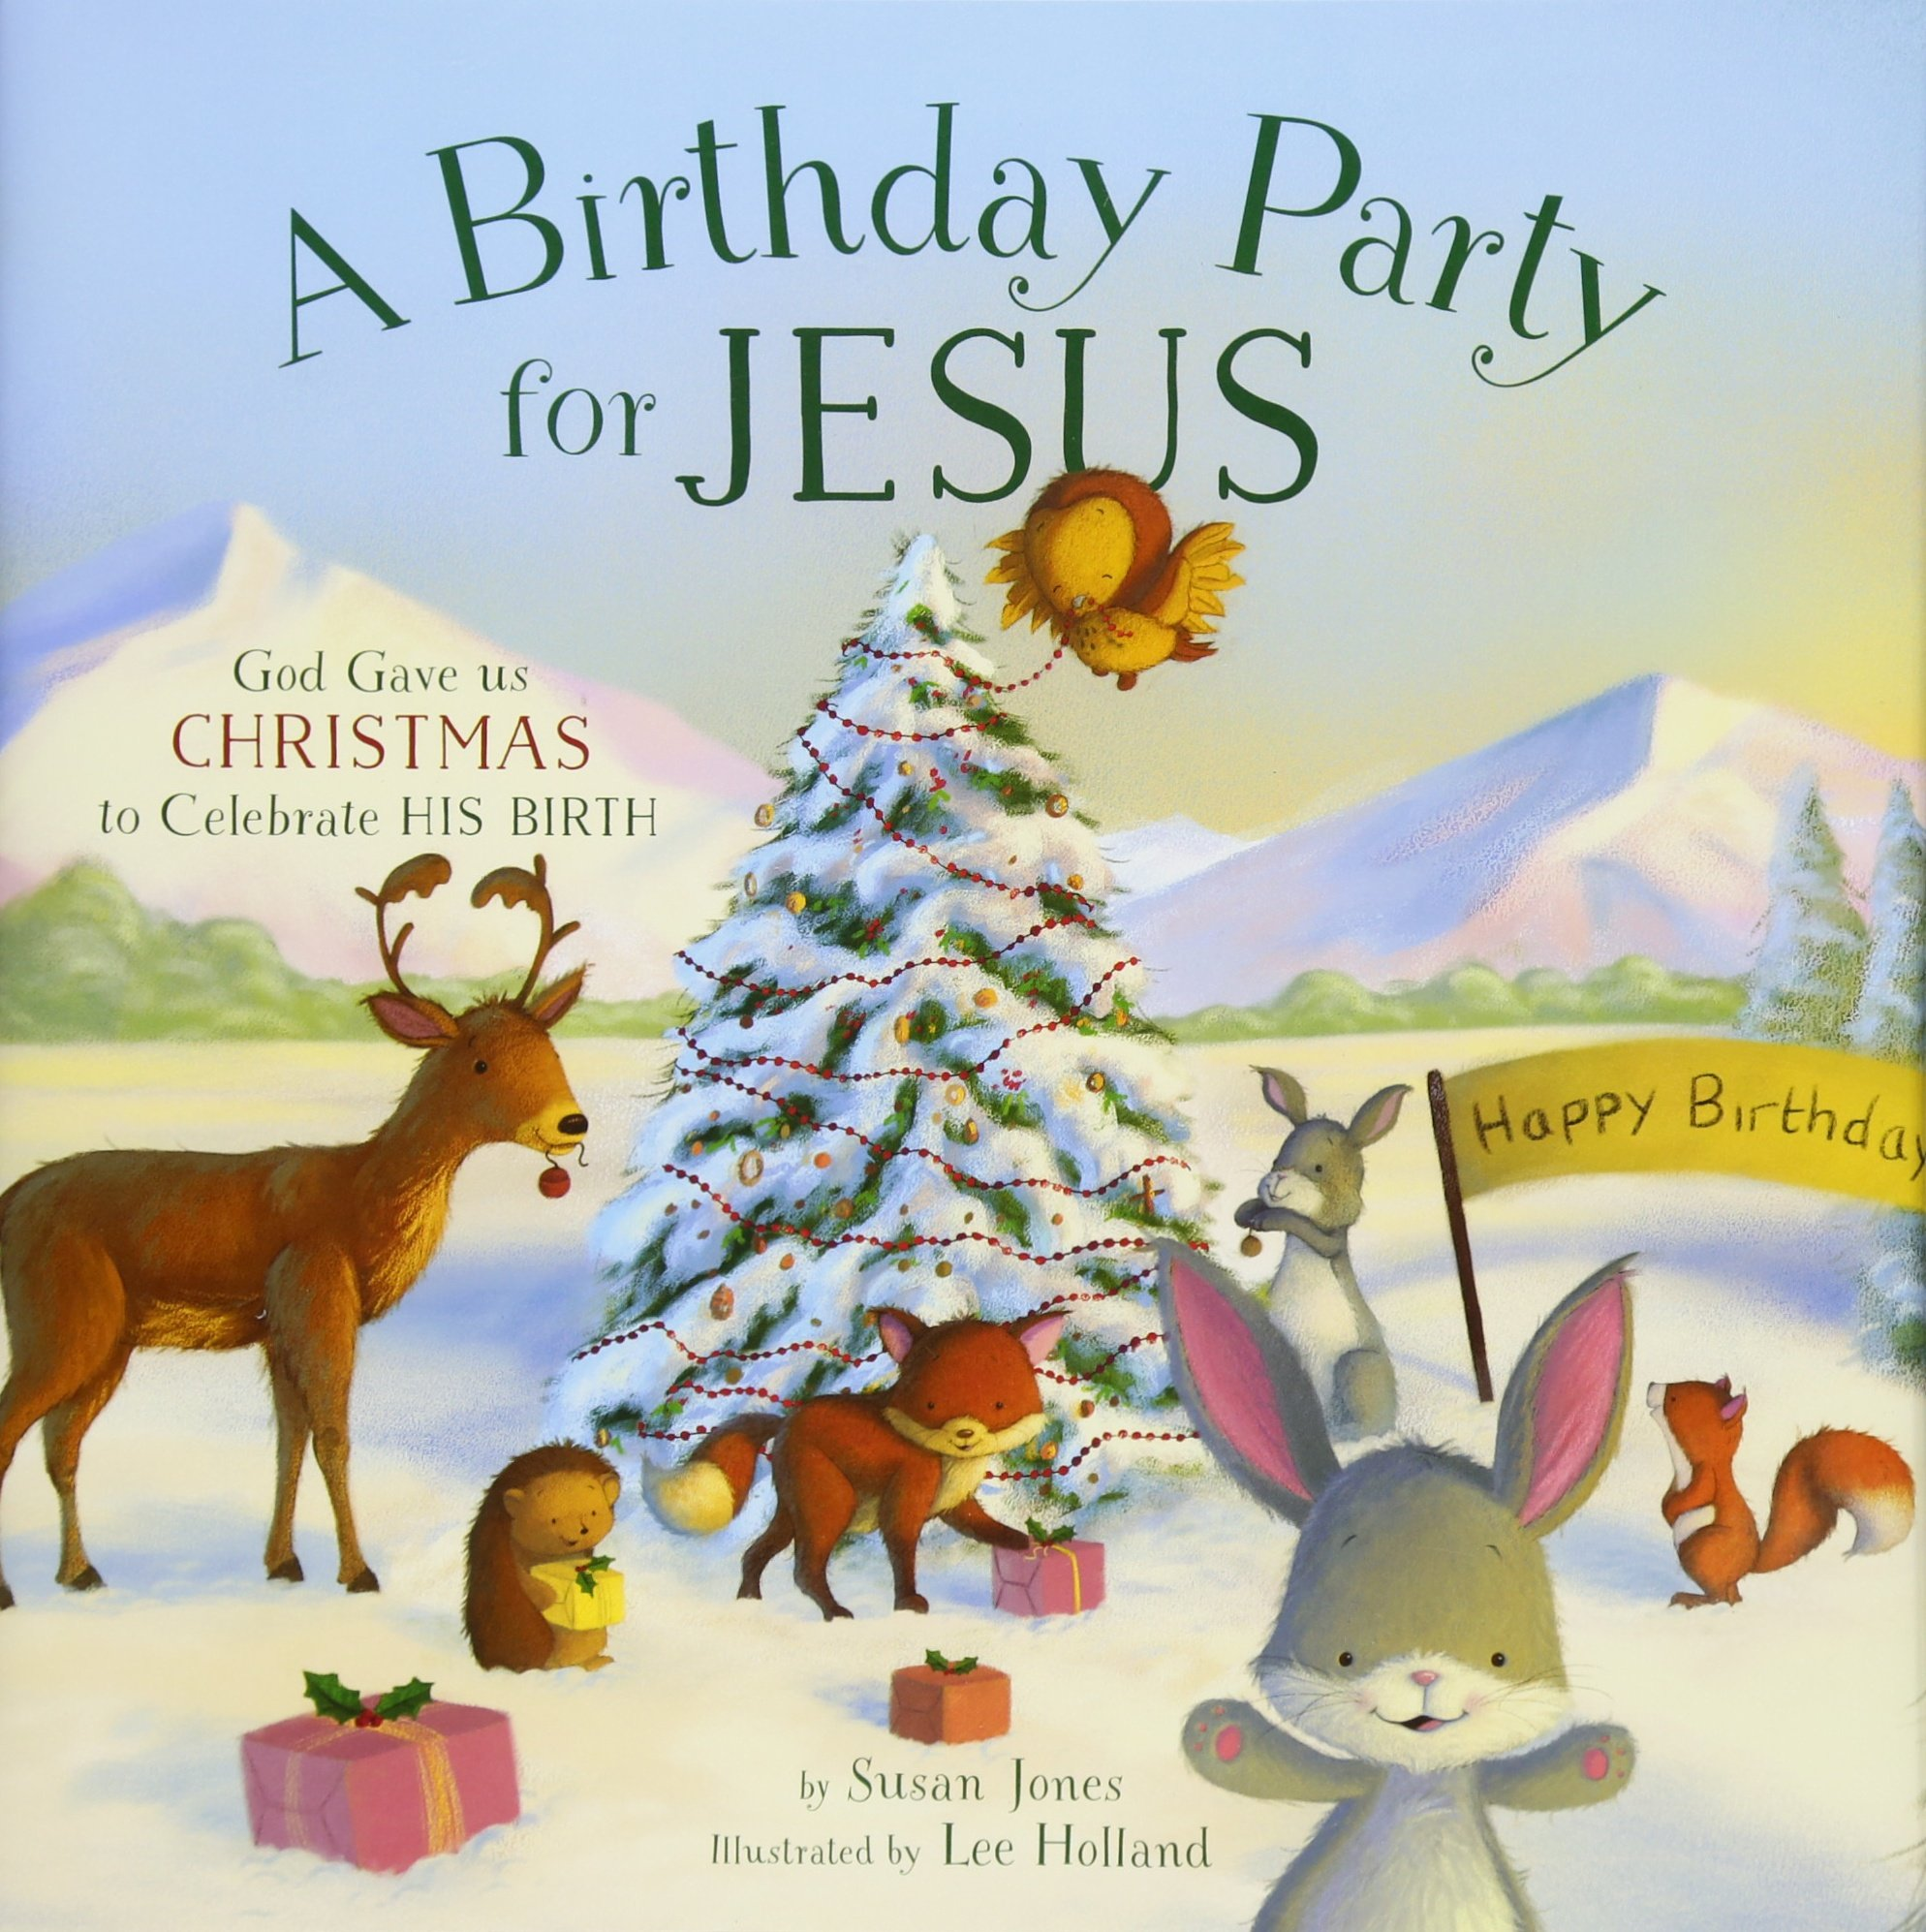 amazoncom a birthday party for jesus 9781680993196 susan jones lee holland books